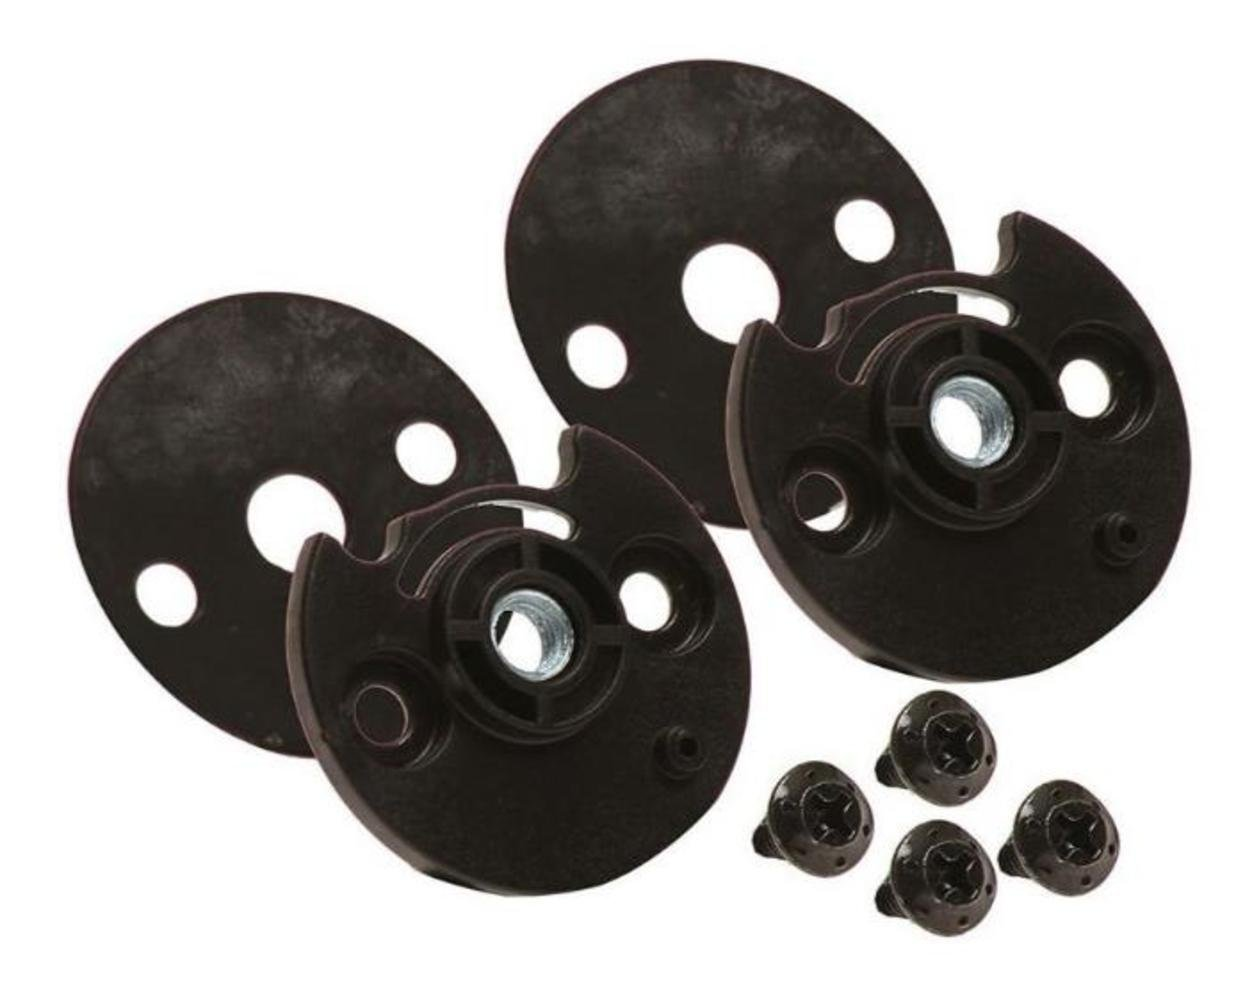 Bell Powersports Bullitt Helmet Replacement Hinge Plate Kit - 8013421